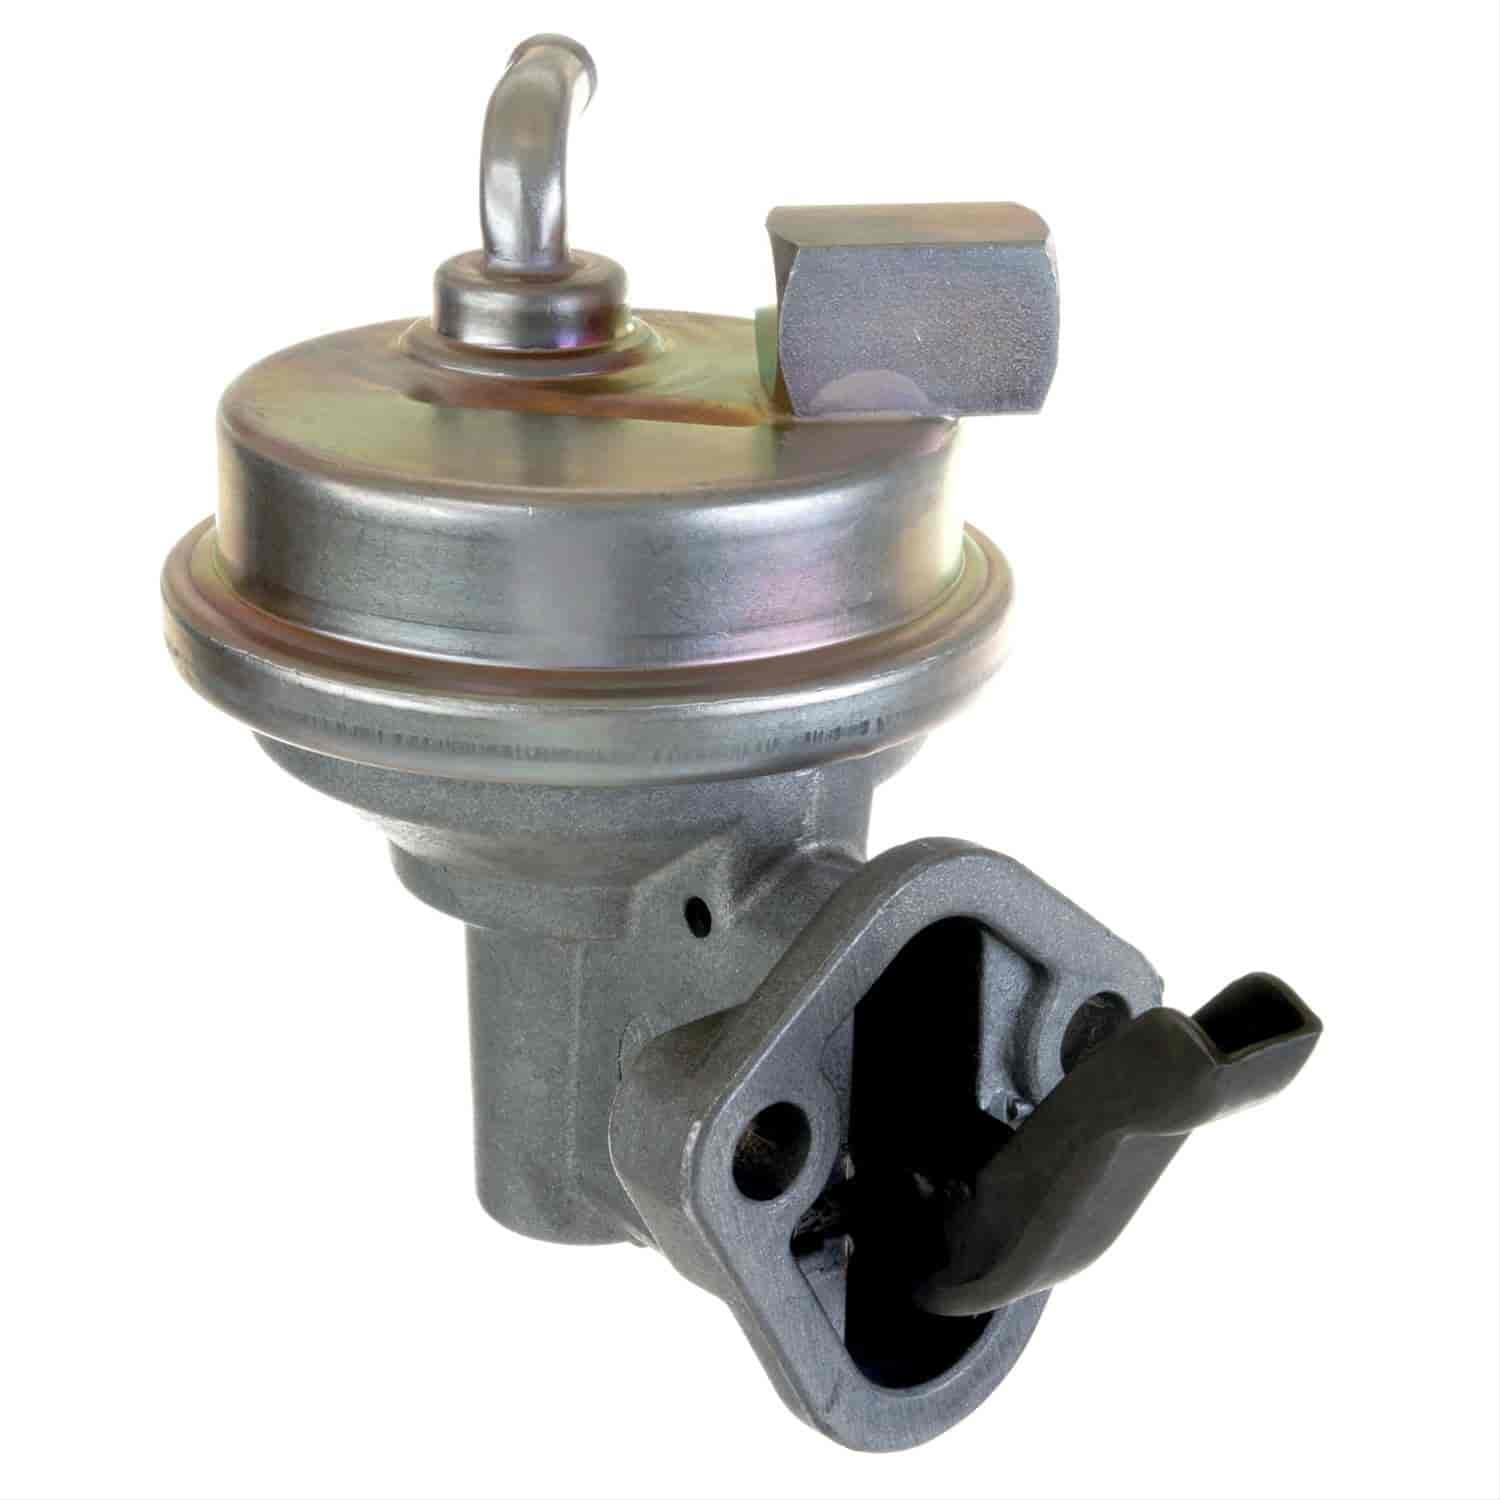 Delphi MF0068 - Delphi Mechanical Fuel Pumps